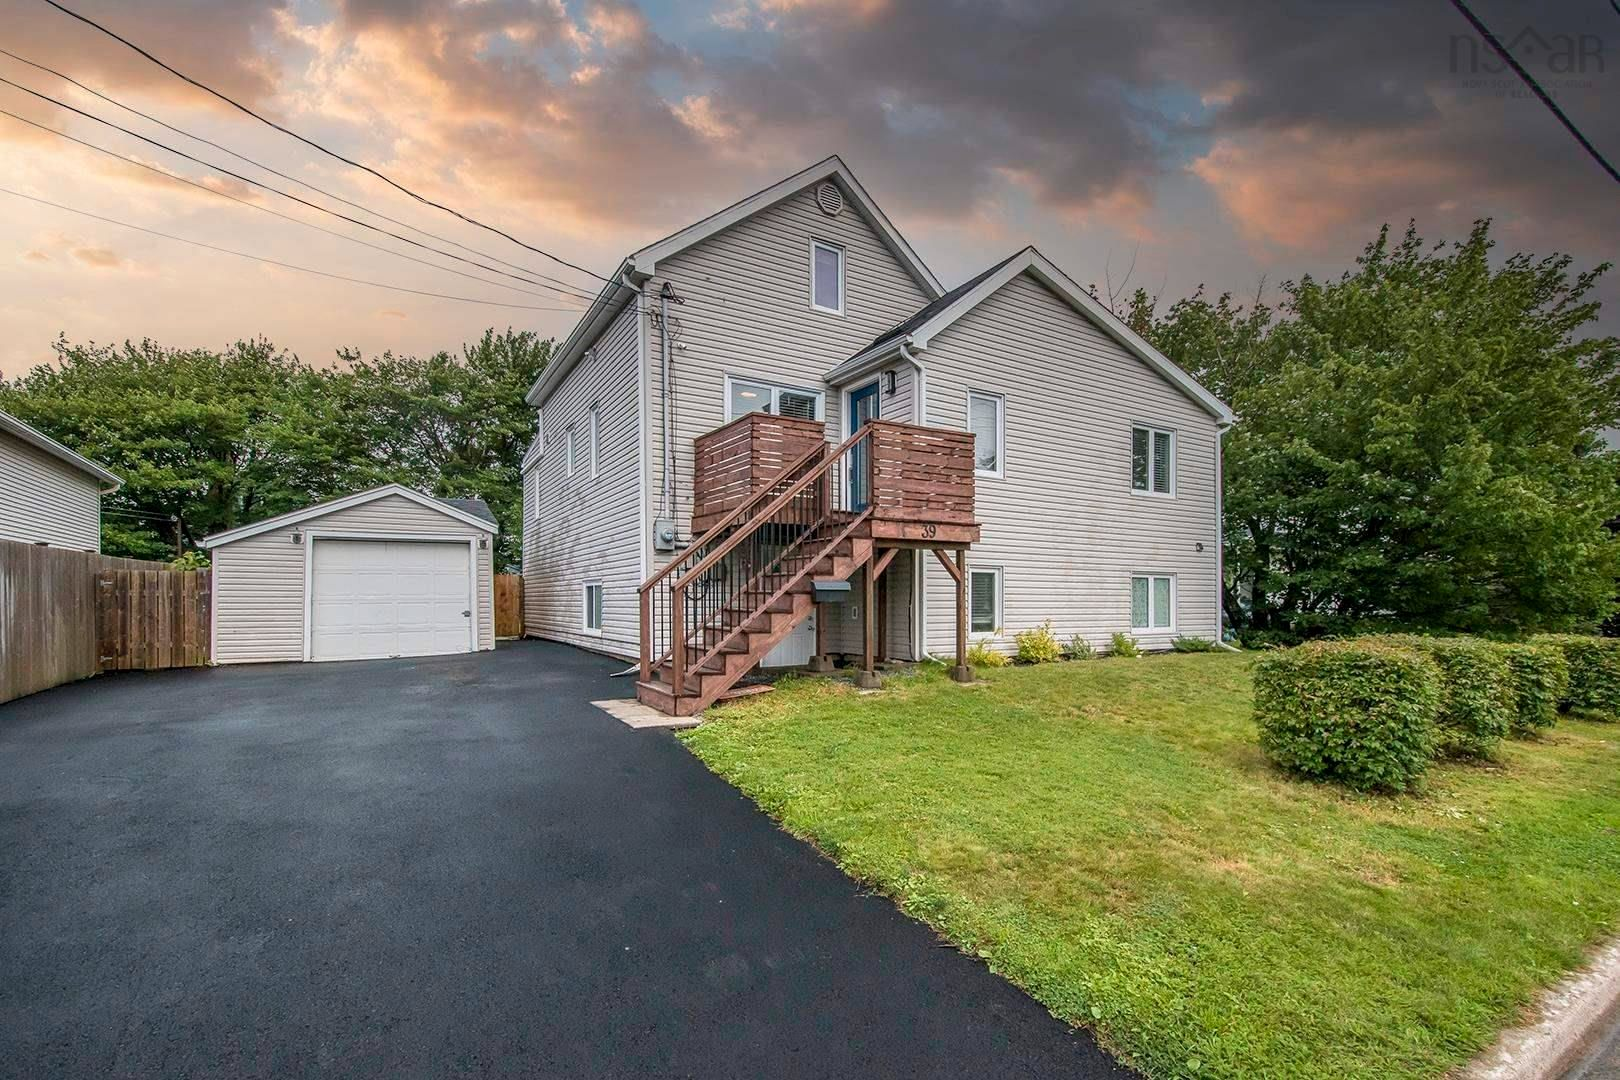 Main Photo: 39 Marvin Street in Dartmouth: 12-Southdale, Manor Park Residential for sale (Halifax-Dartmouth)  : MLS®# 202122923